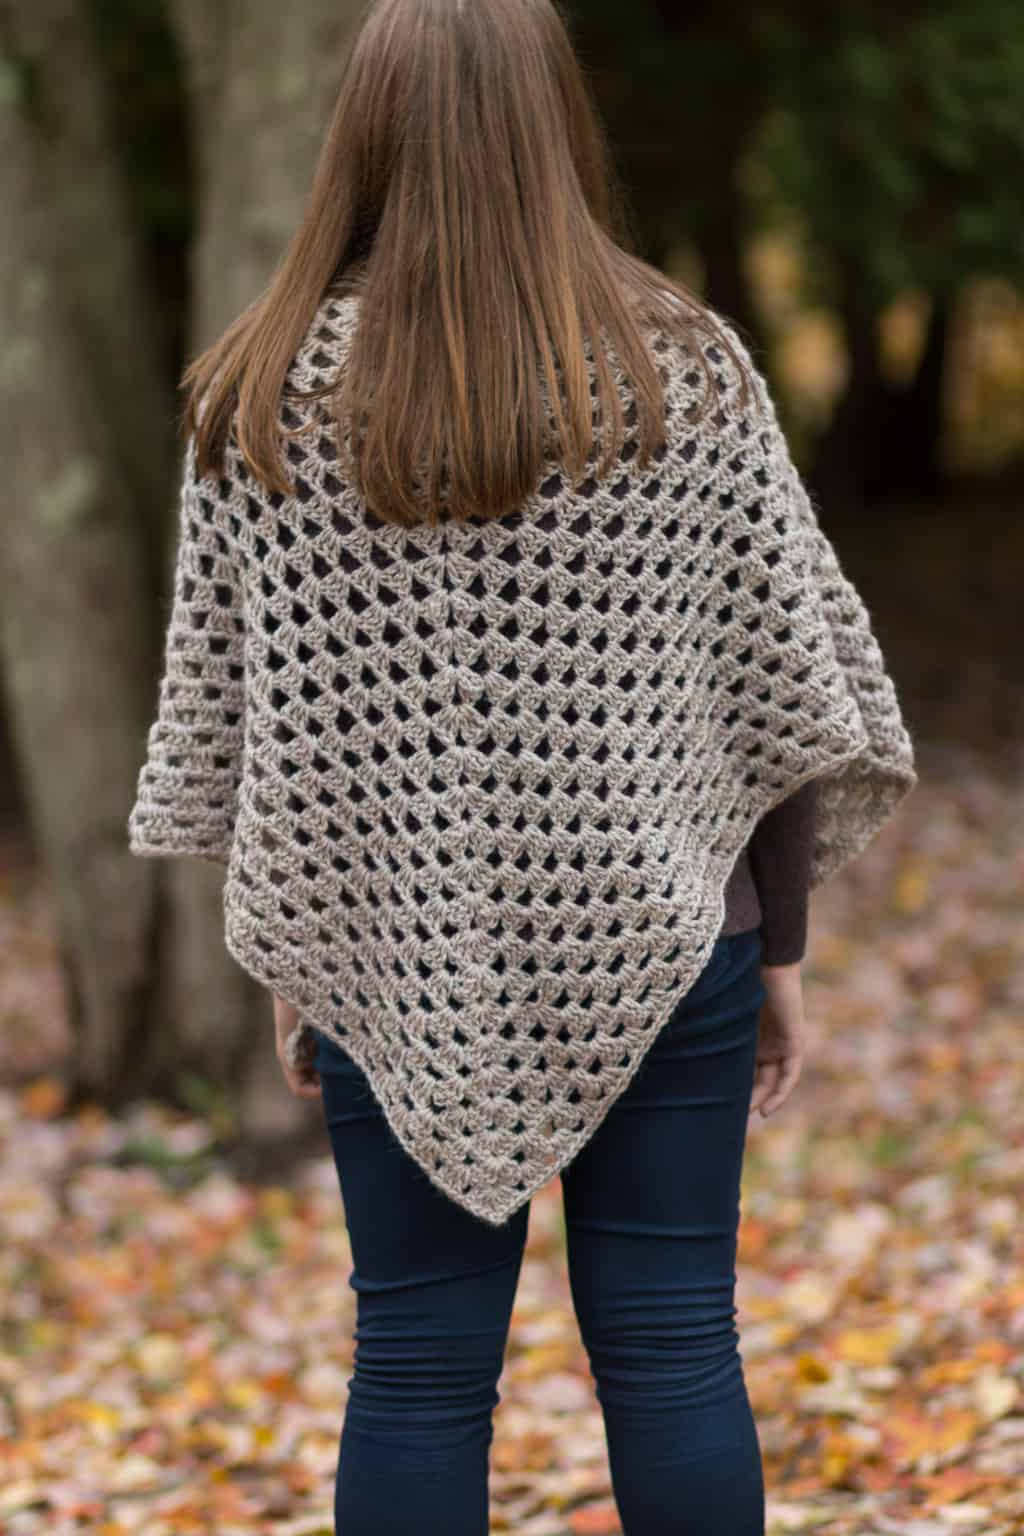 Back of a Crochet Granny Shawl - Simple Crochet Pattern